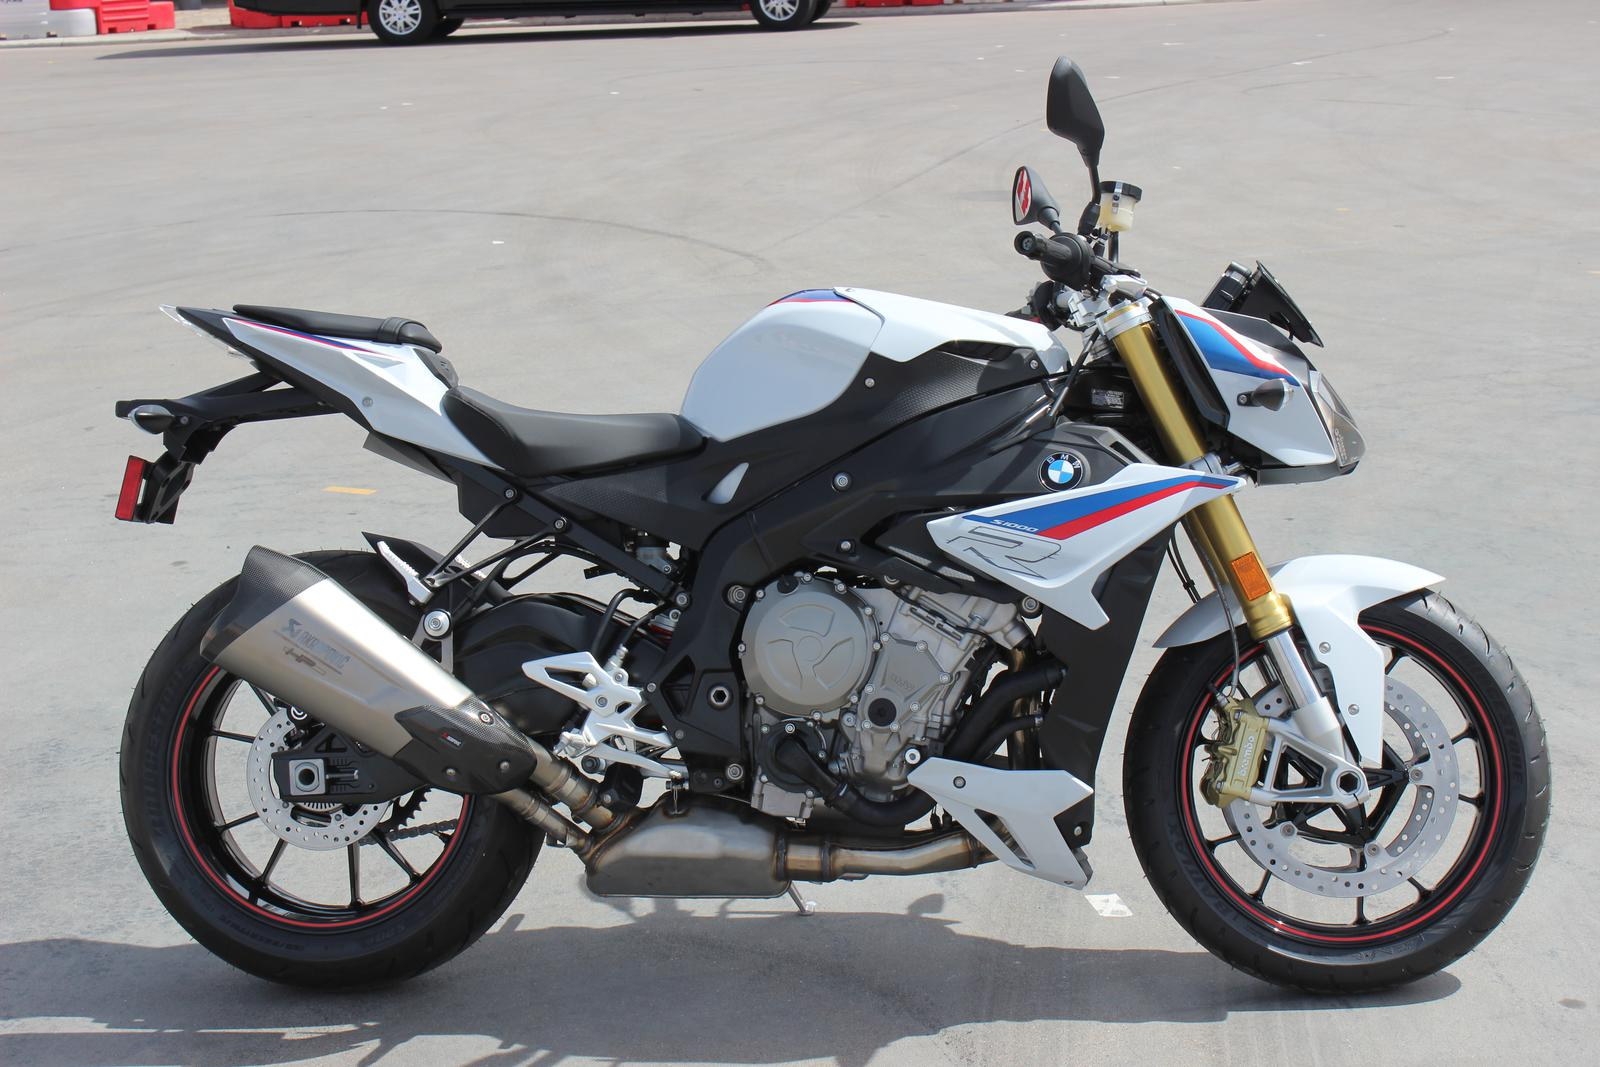 2018 BMW S 1000 R for sale in Scottsdale, AZ | GO AZ Motorcycles in ...